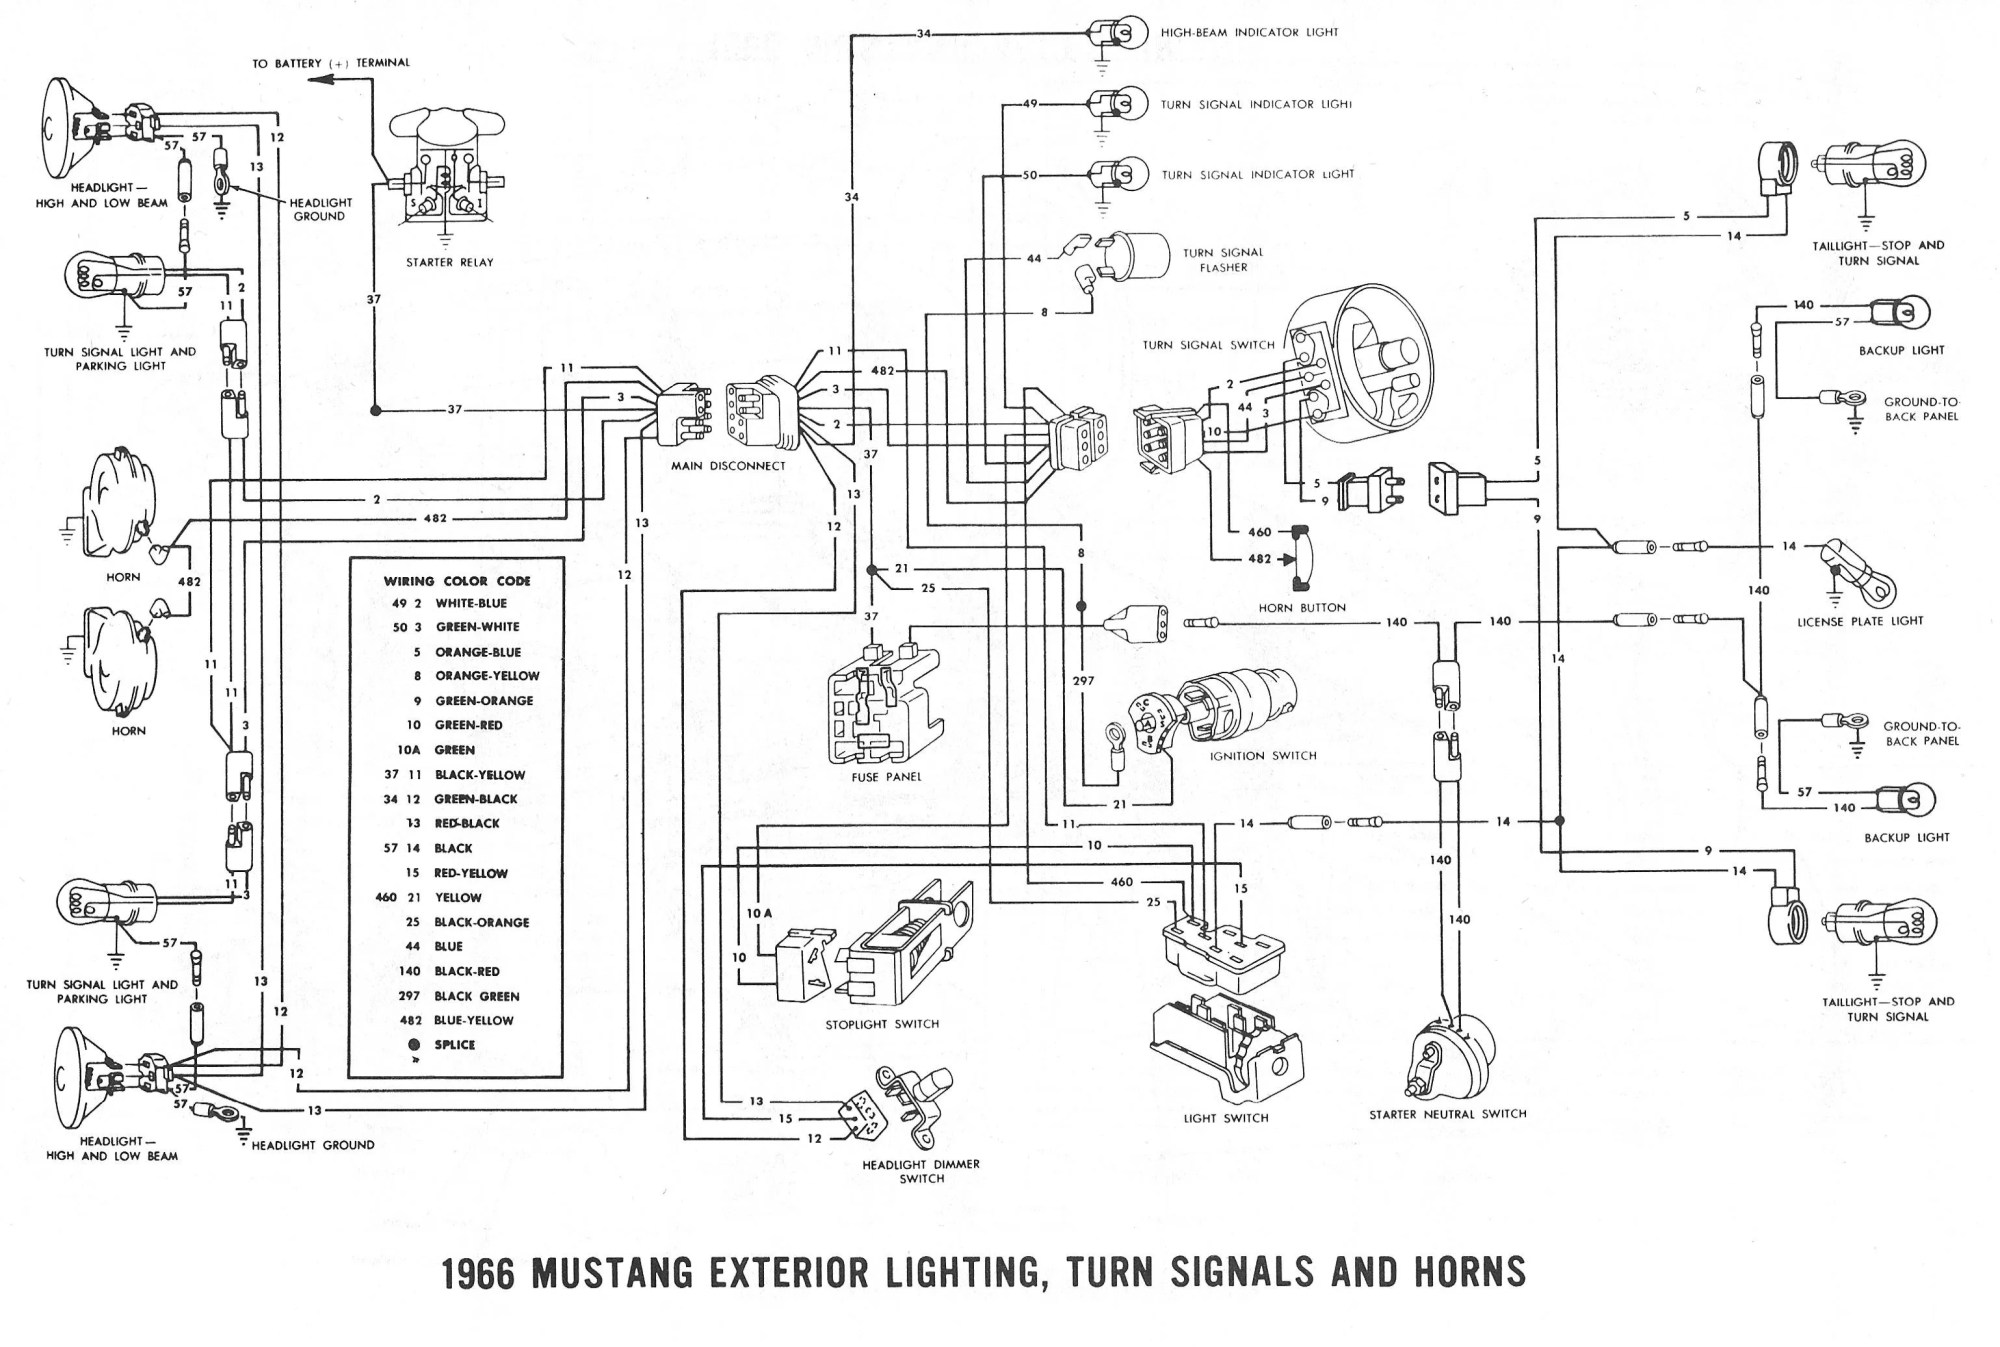 hight resolution of 1966 mustang wiring diagram wiring diagram ebook 65 mustang dash wiring diagram free download